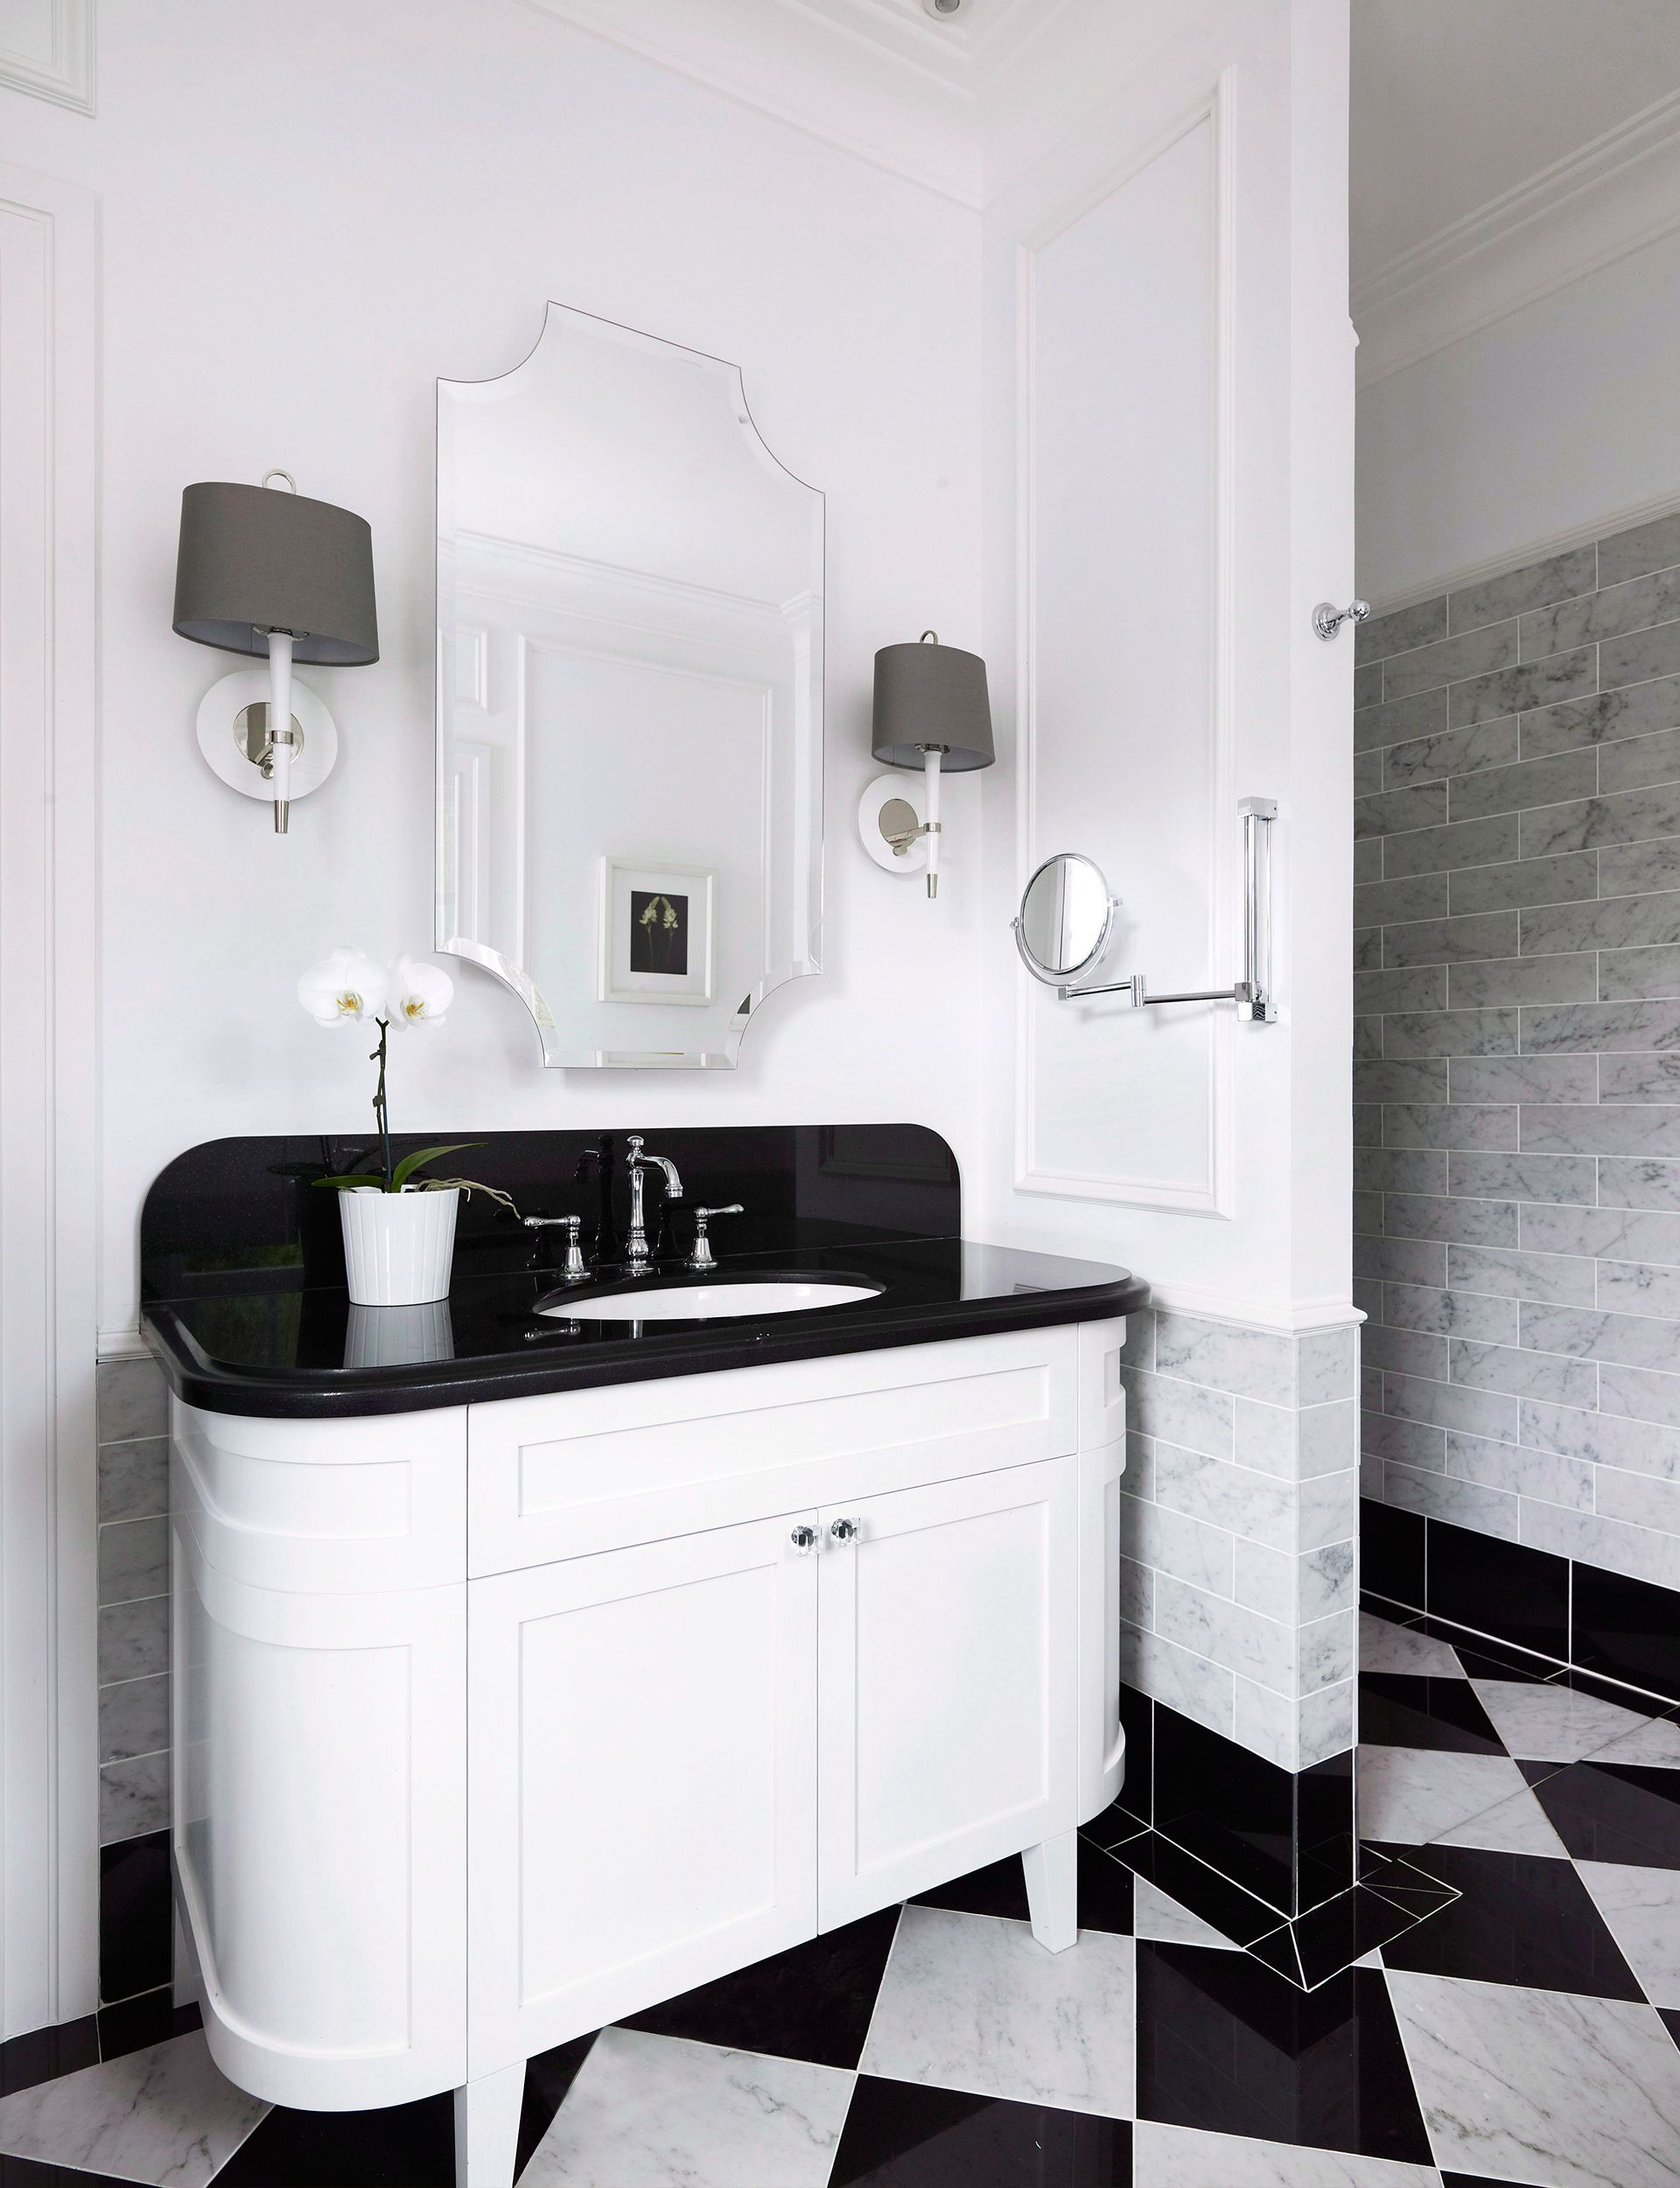 5 best bathroom vanity designs to match your style